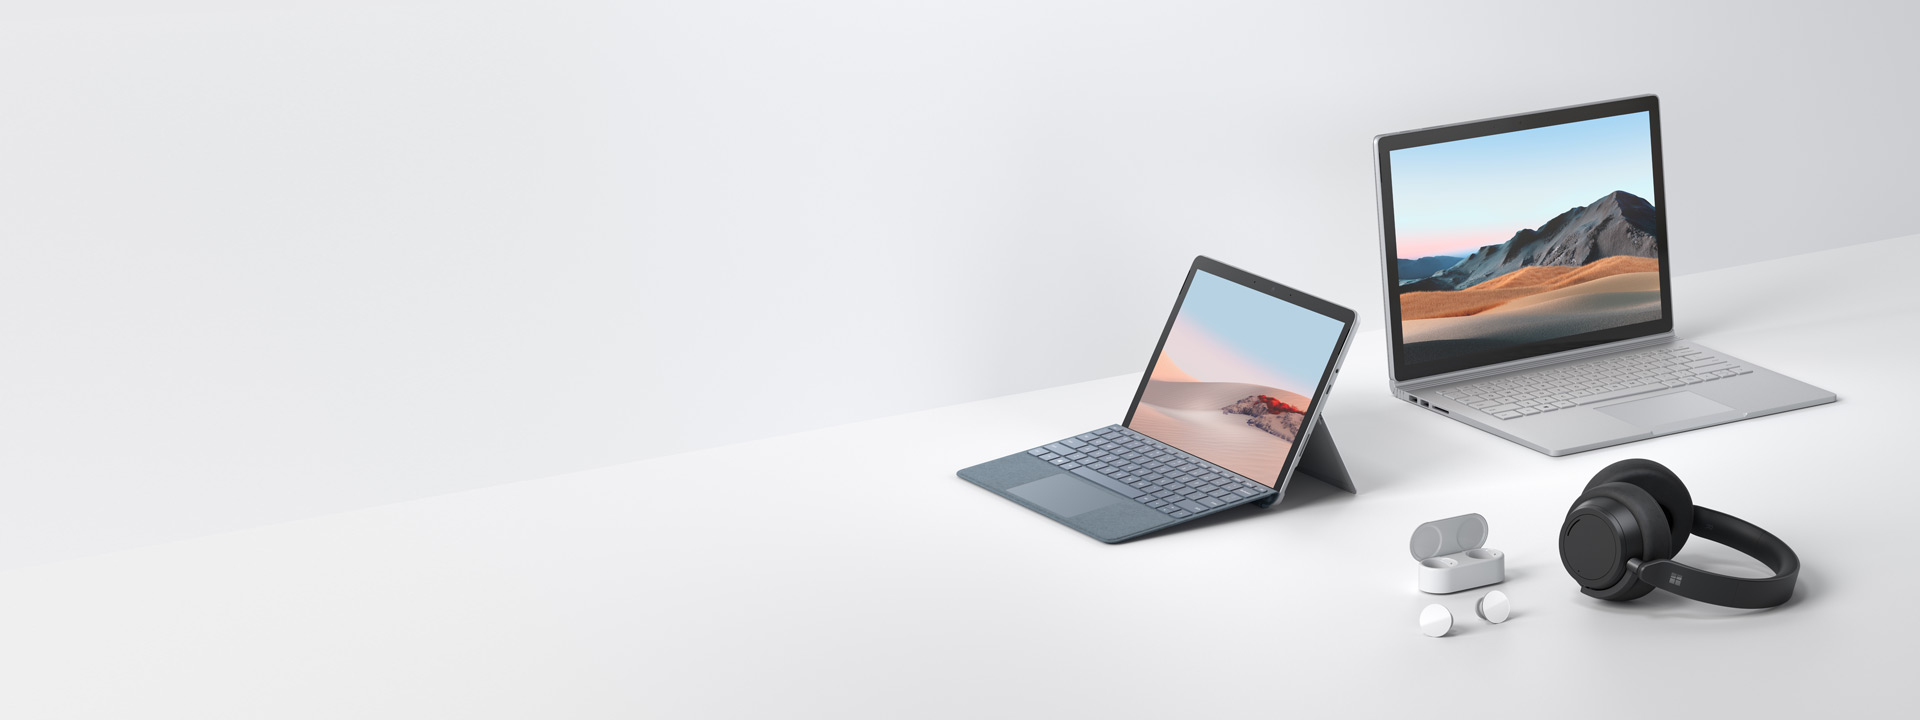 Surface 系列電腦包括 Surface Book 3、Surface Go 2、Surface Headphones 2 和 Surface Earbuds